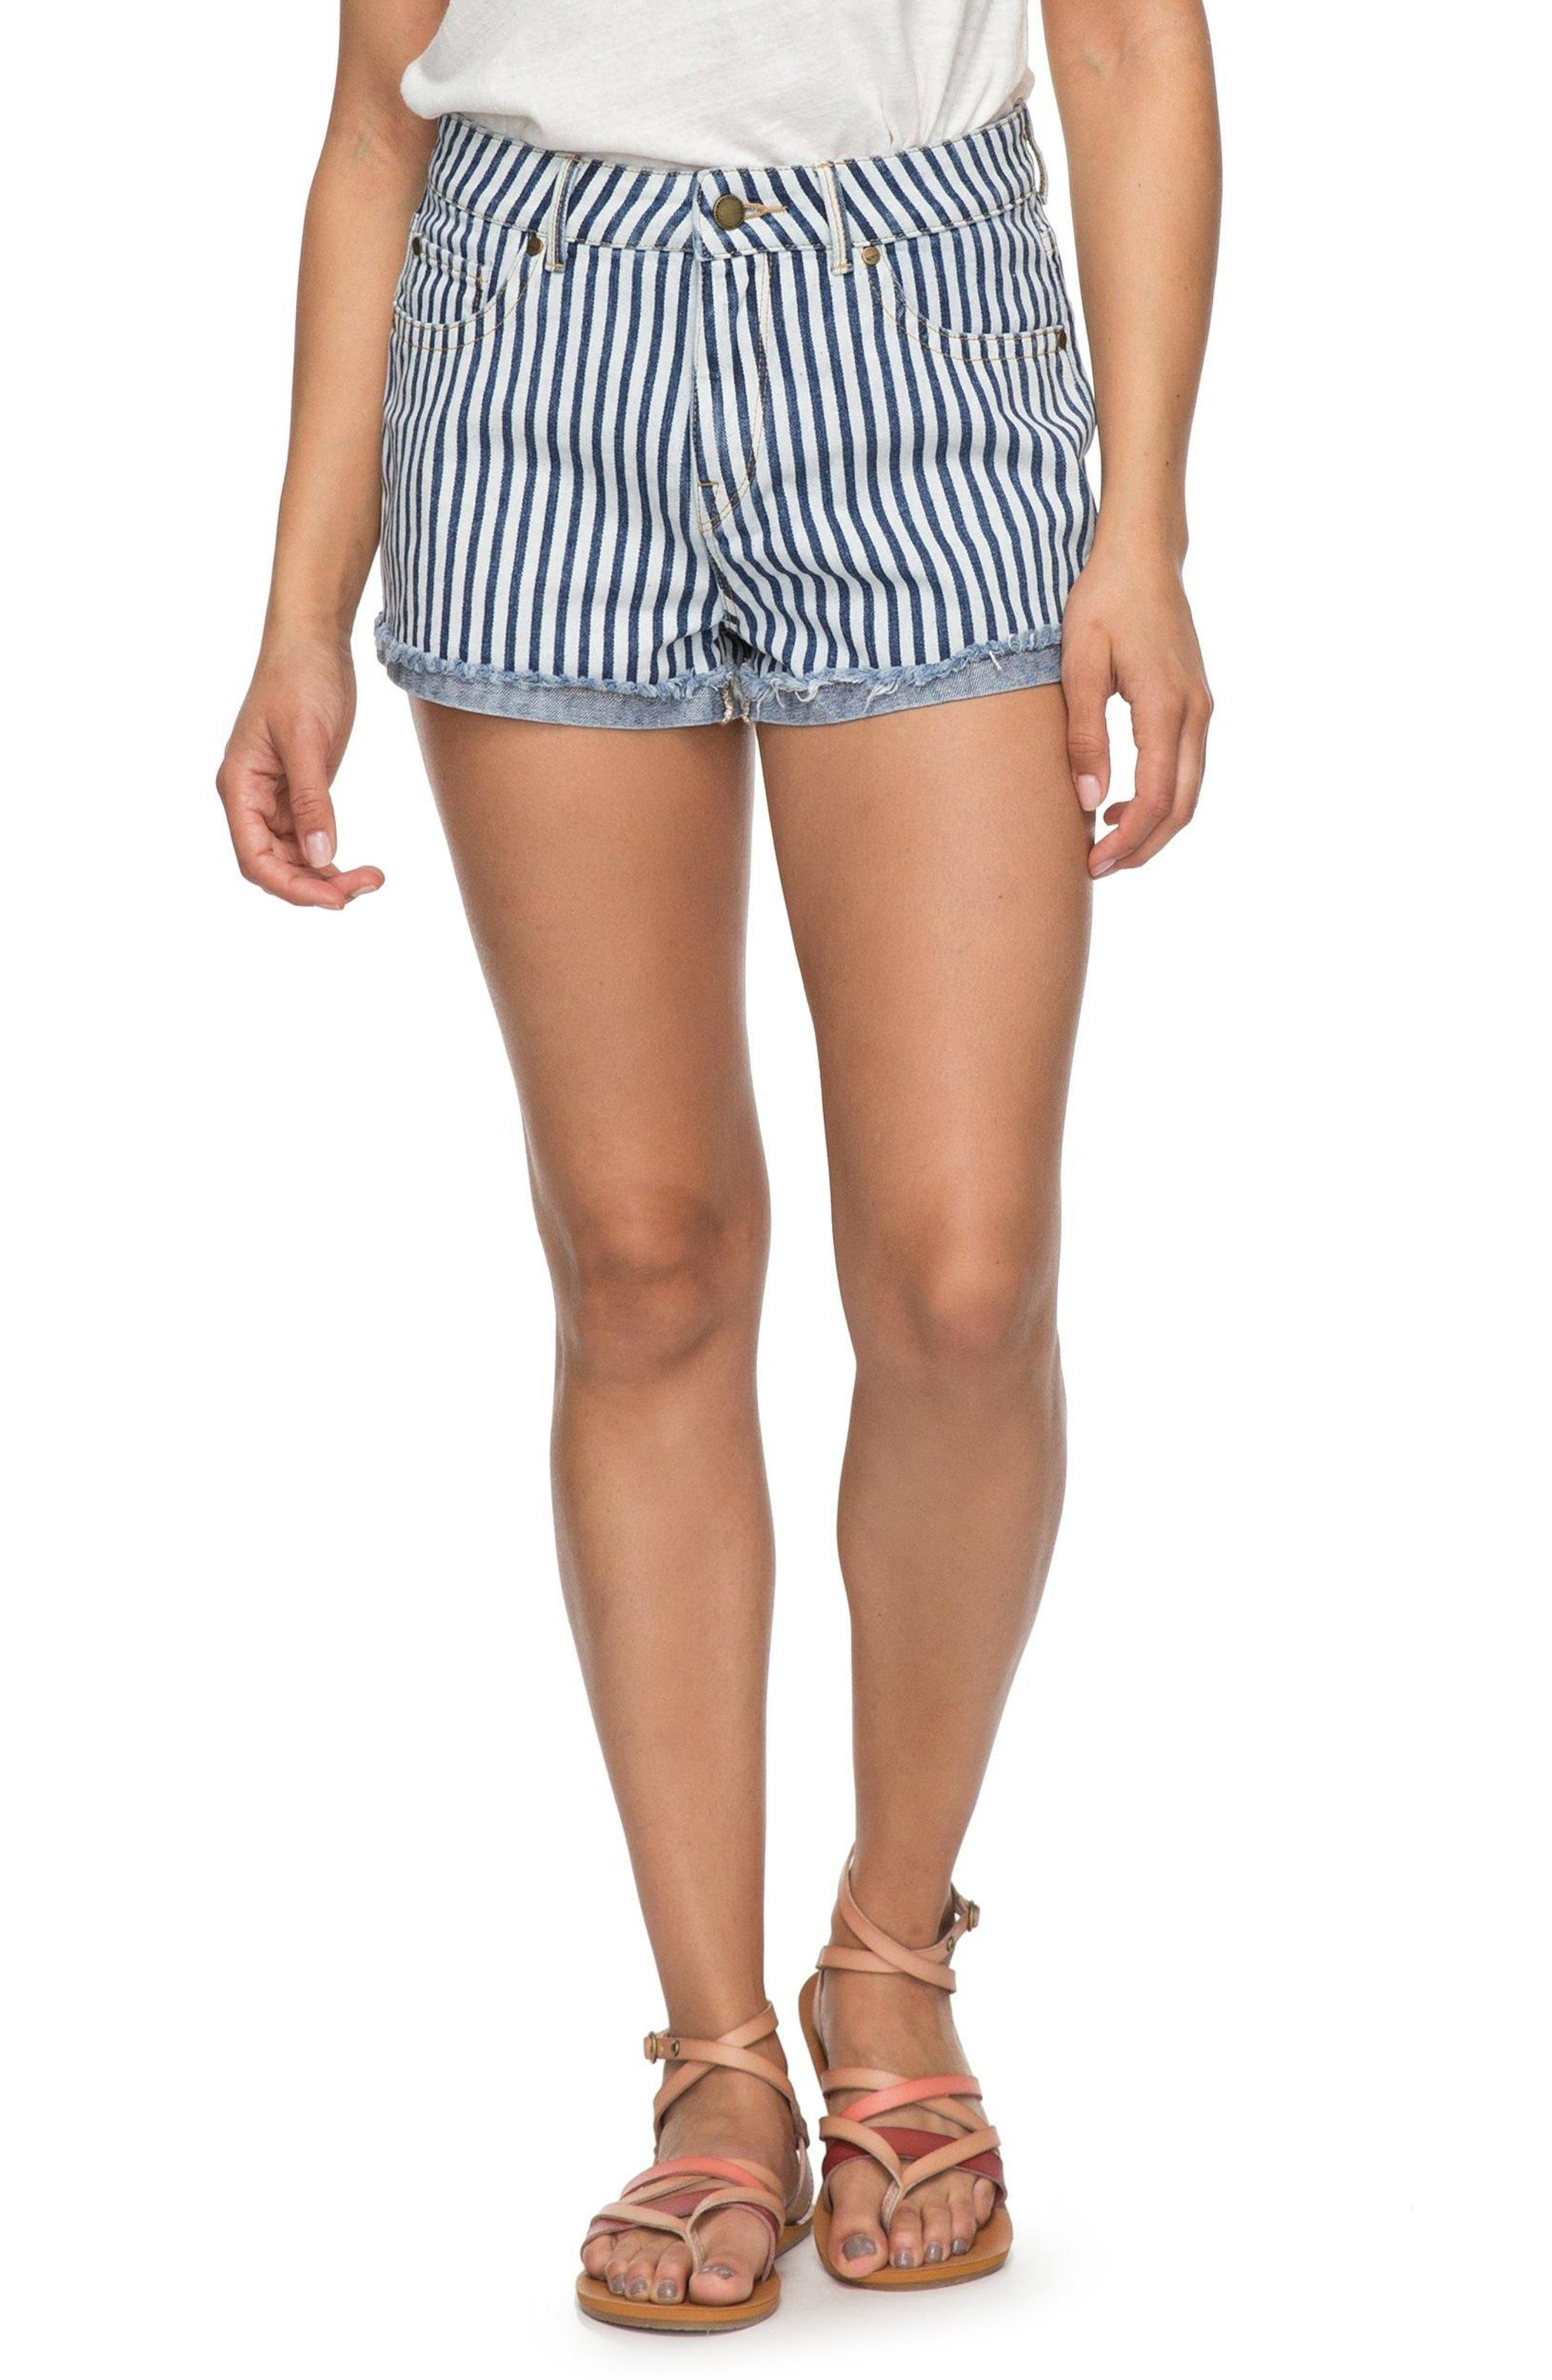 Holbrook Stripe Cotton Shorts,                         Main,                         color, Medium Blue La Vague Stripe